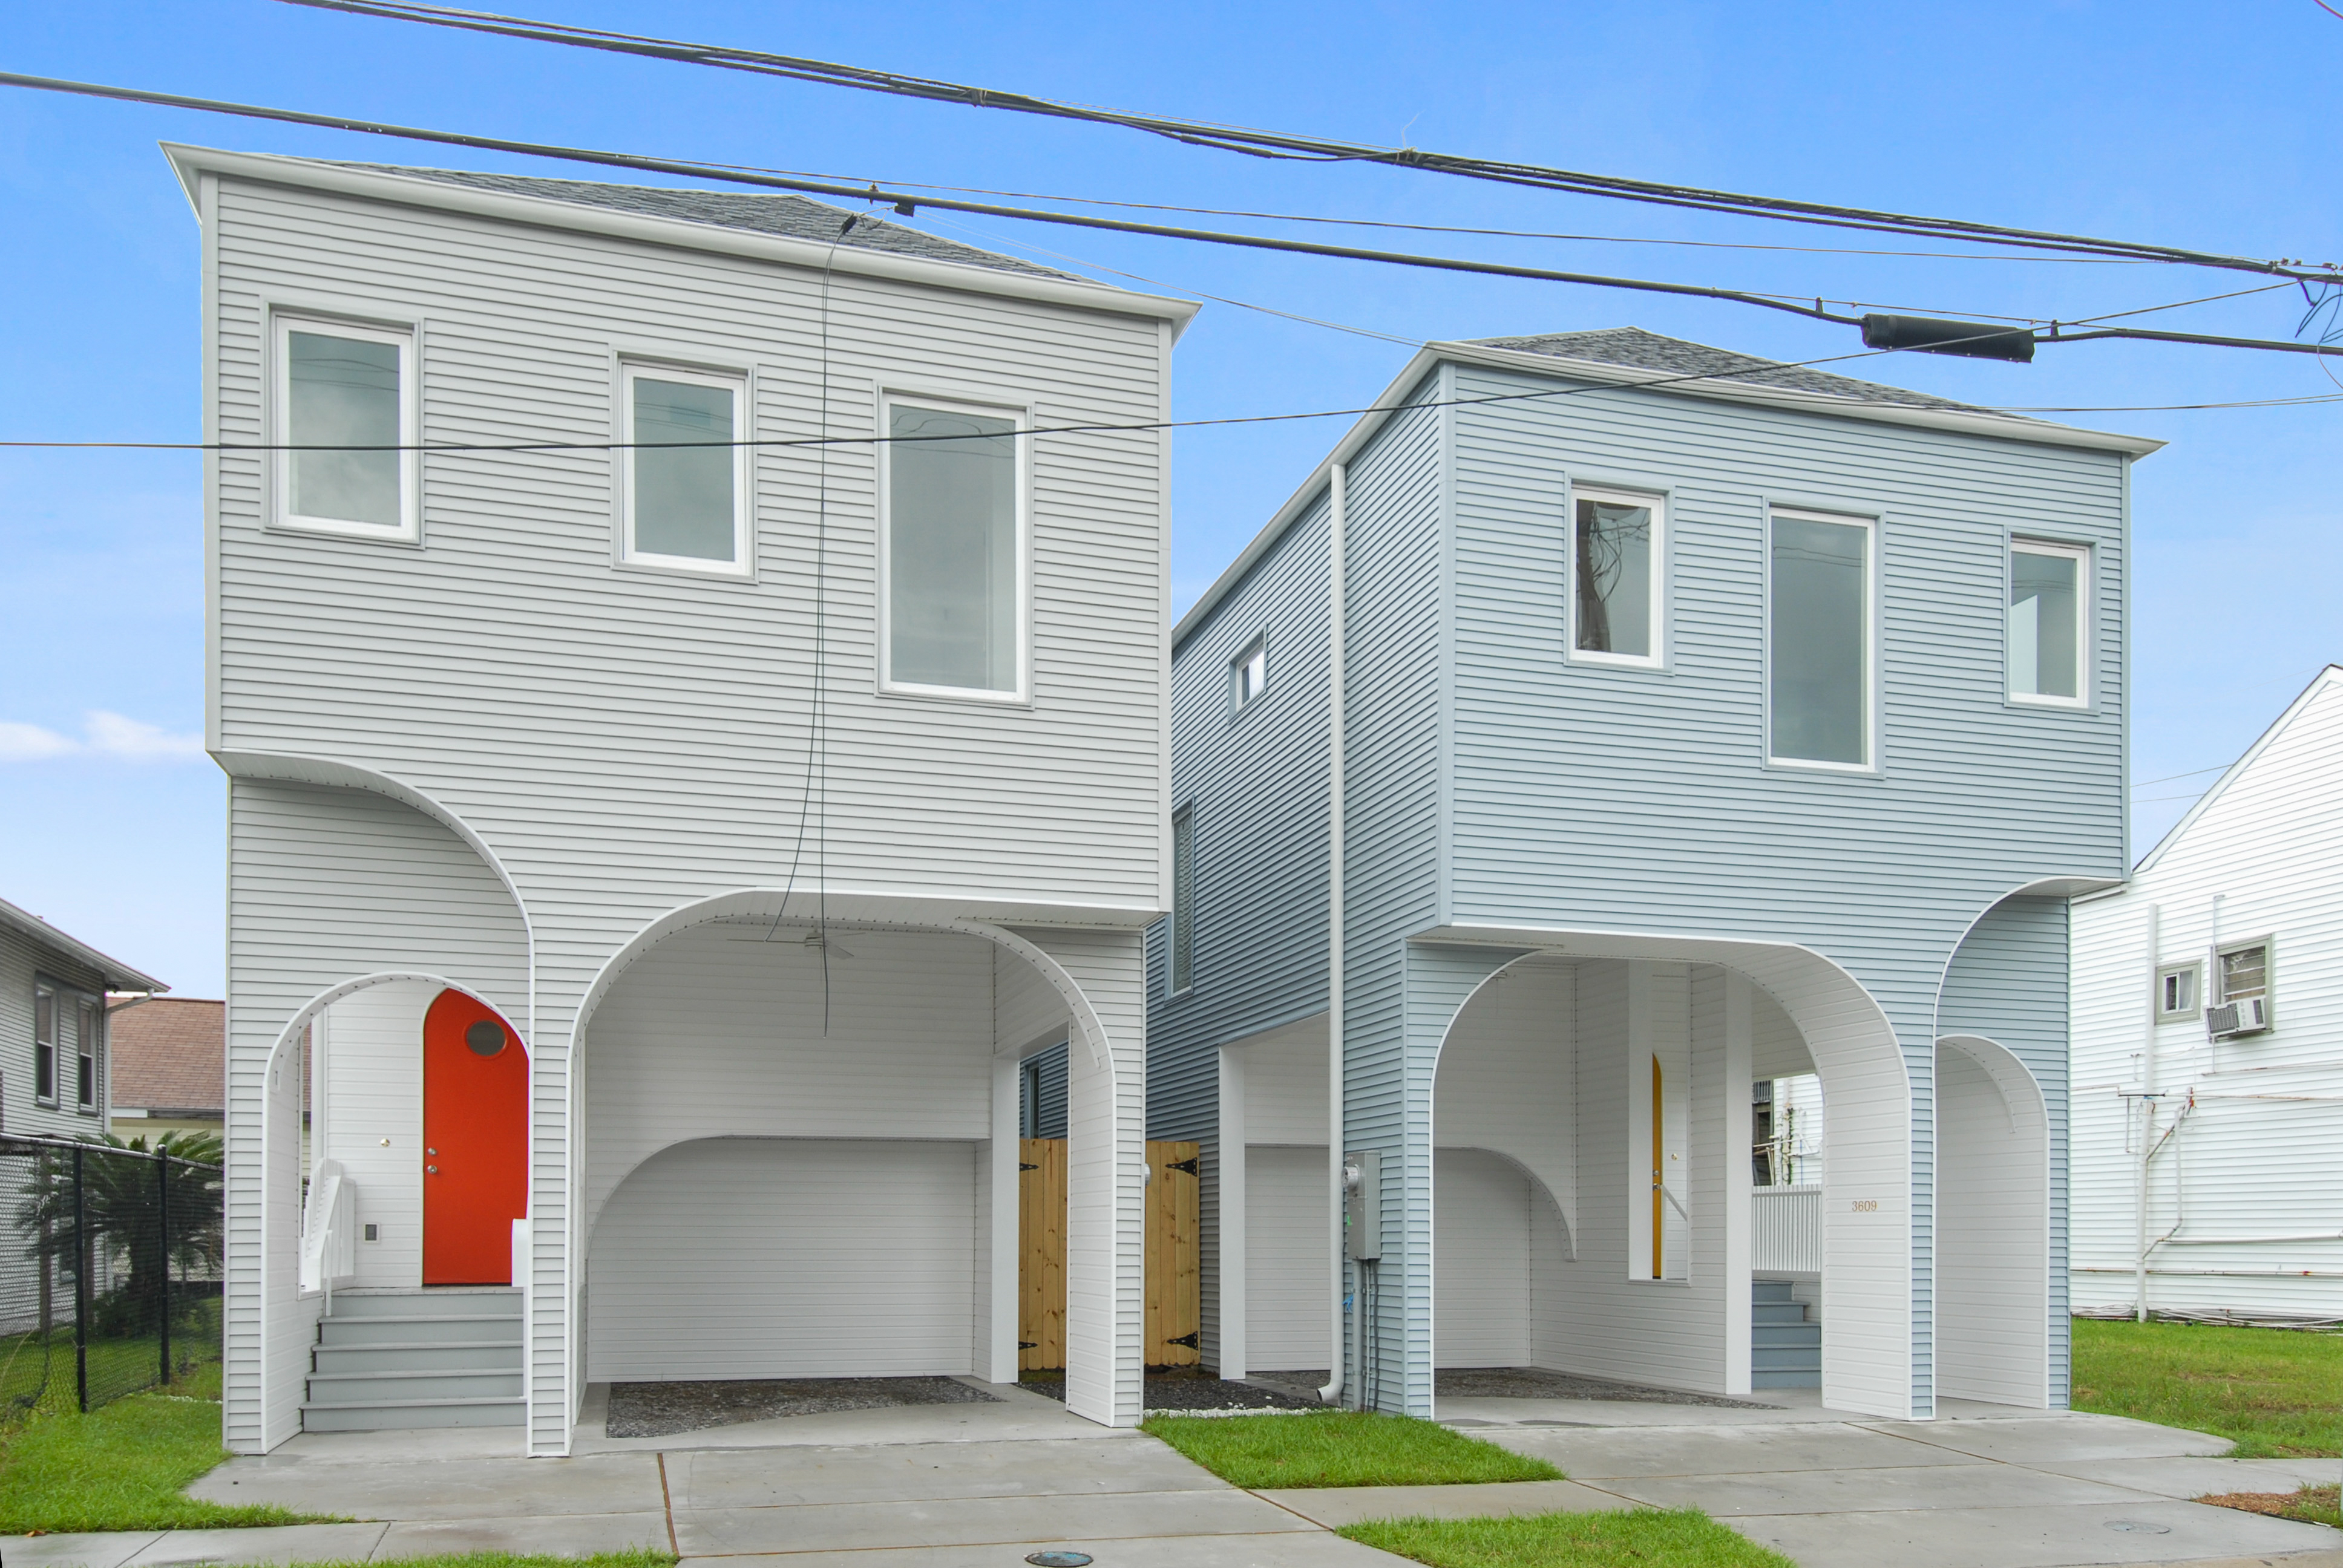 Take a look at NOLA's first crowdfunded homes